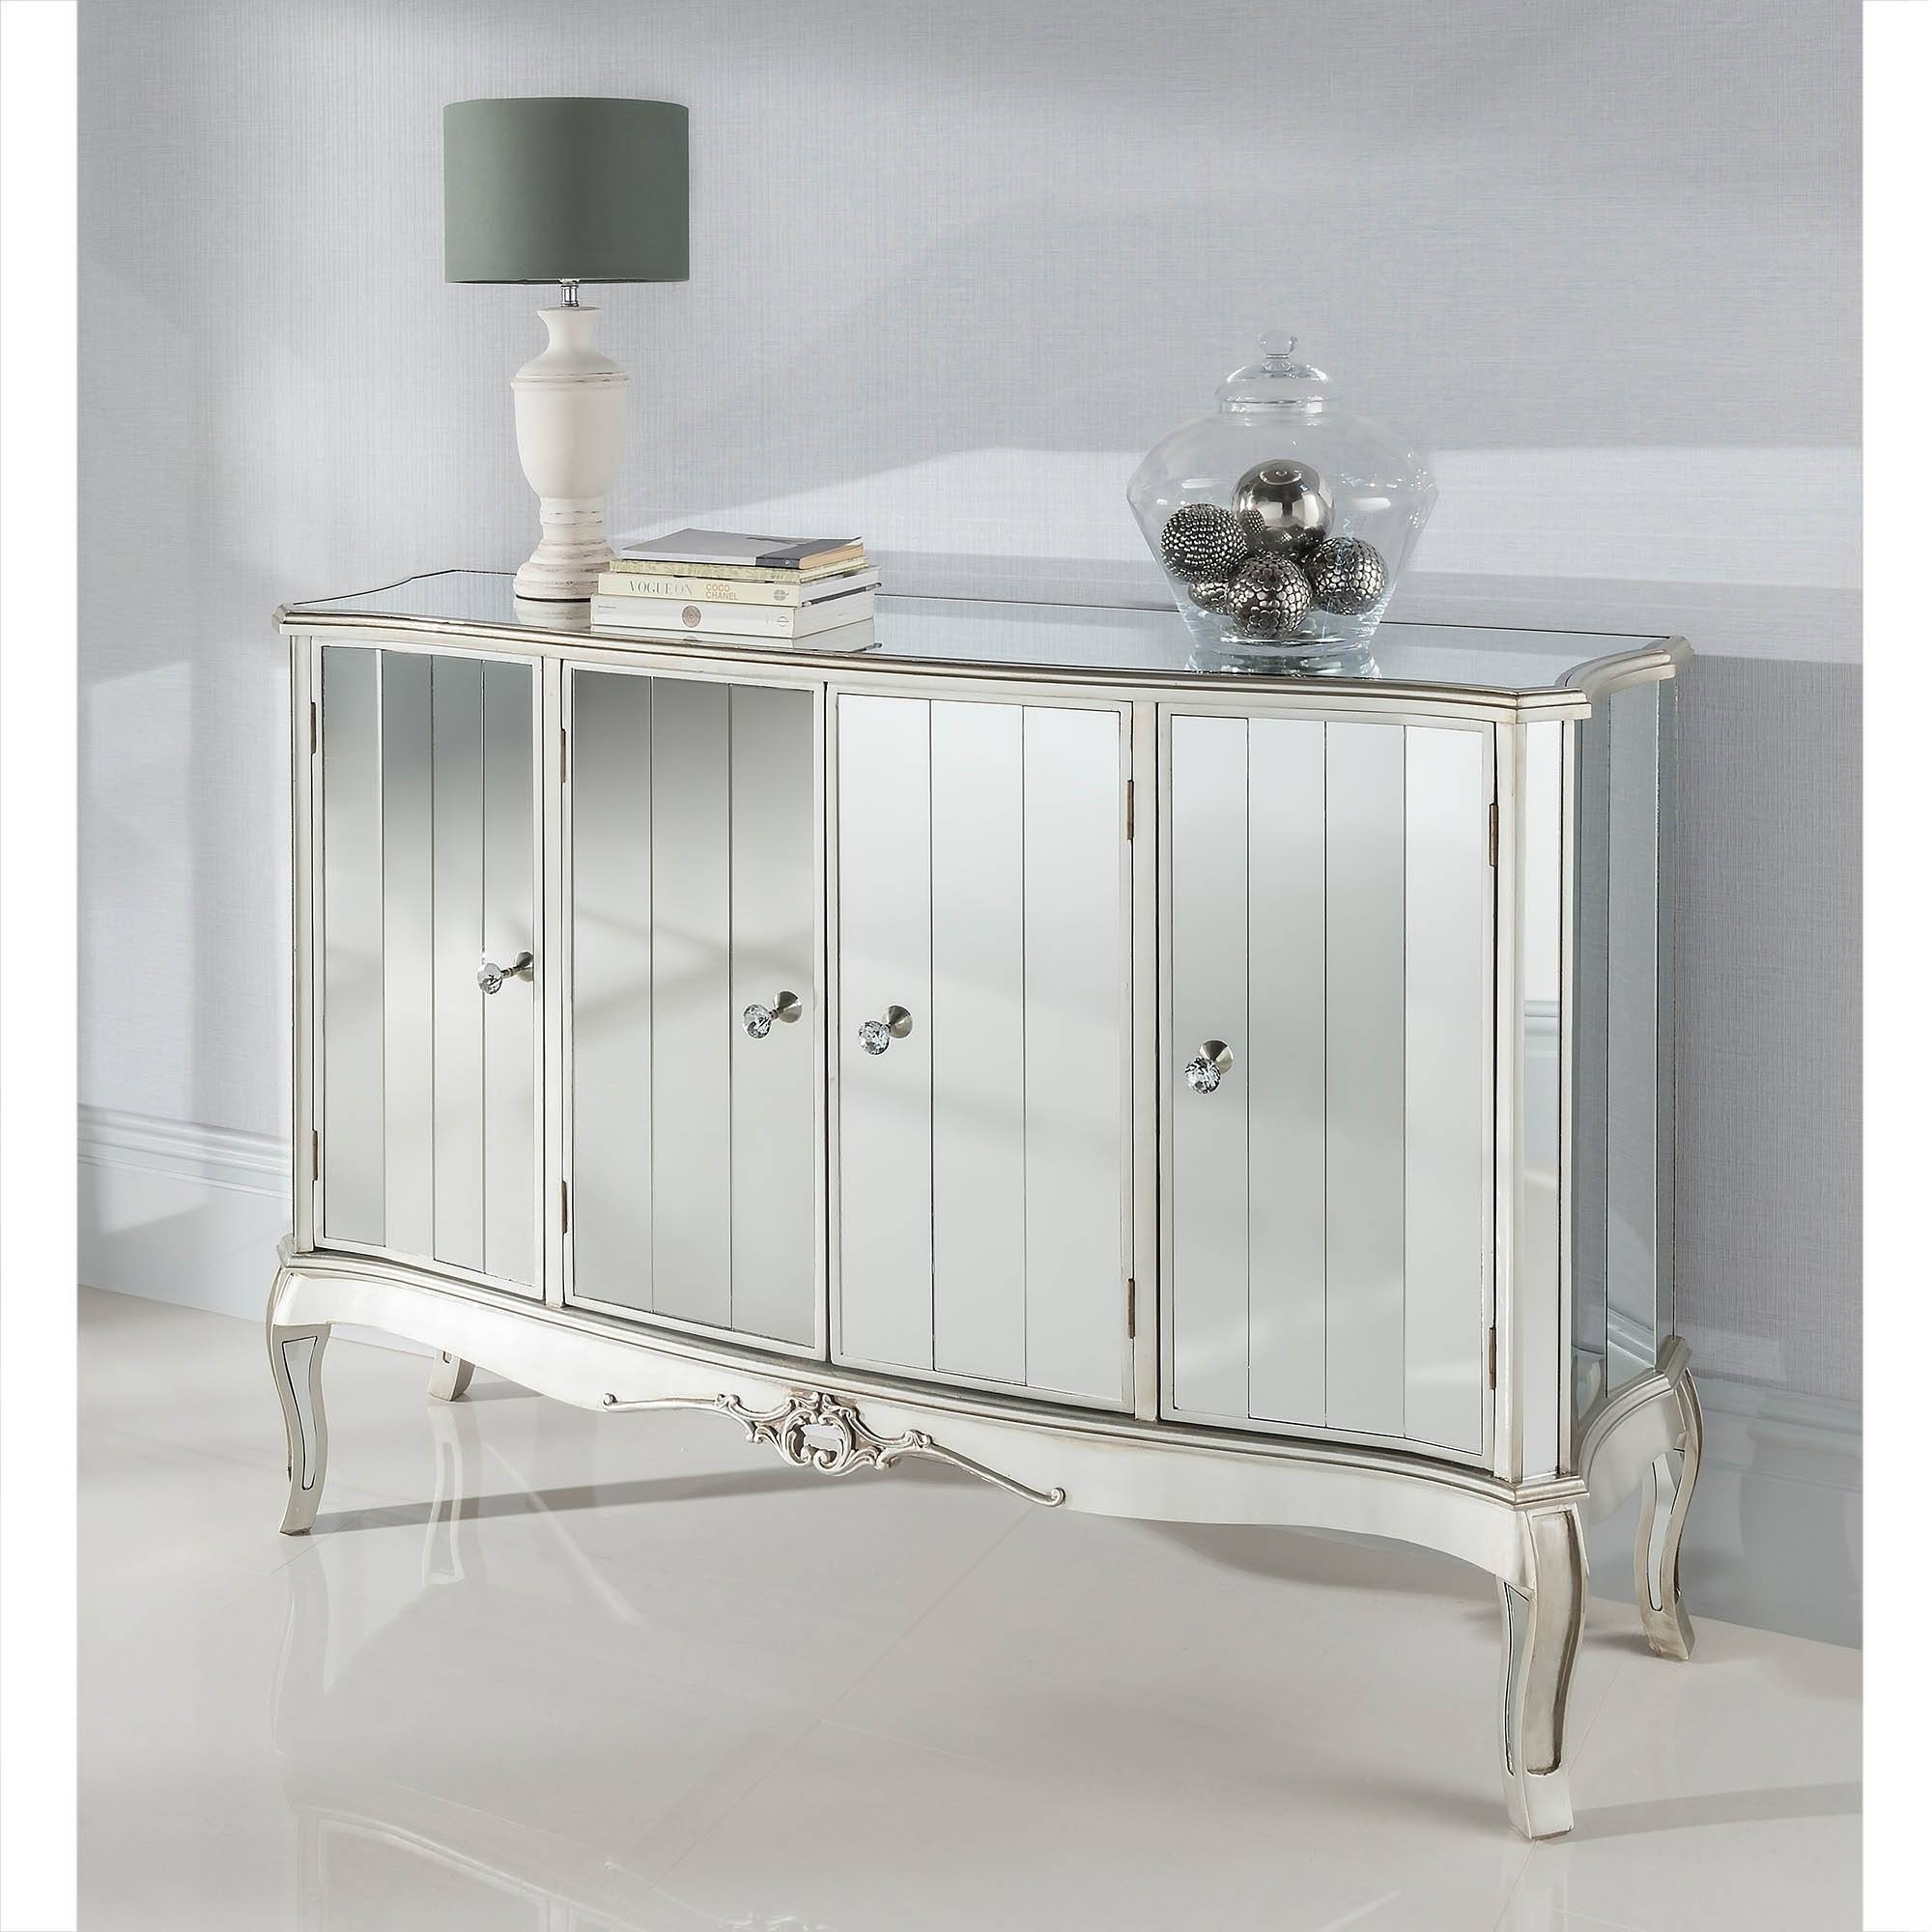 Argente Mirrored Four Door Sideboard | Mirrored Furniture throughout Mirror Sideboards (Image 1 of 15)